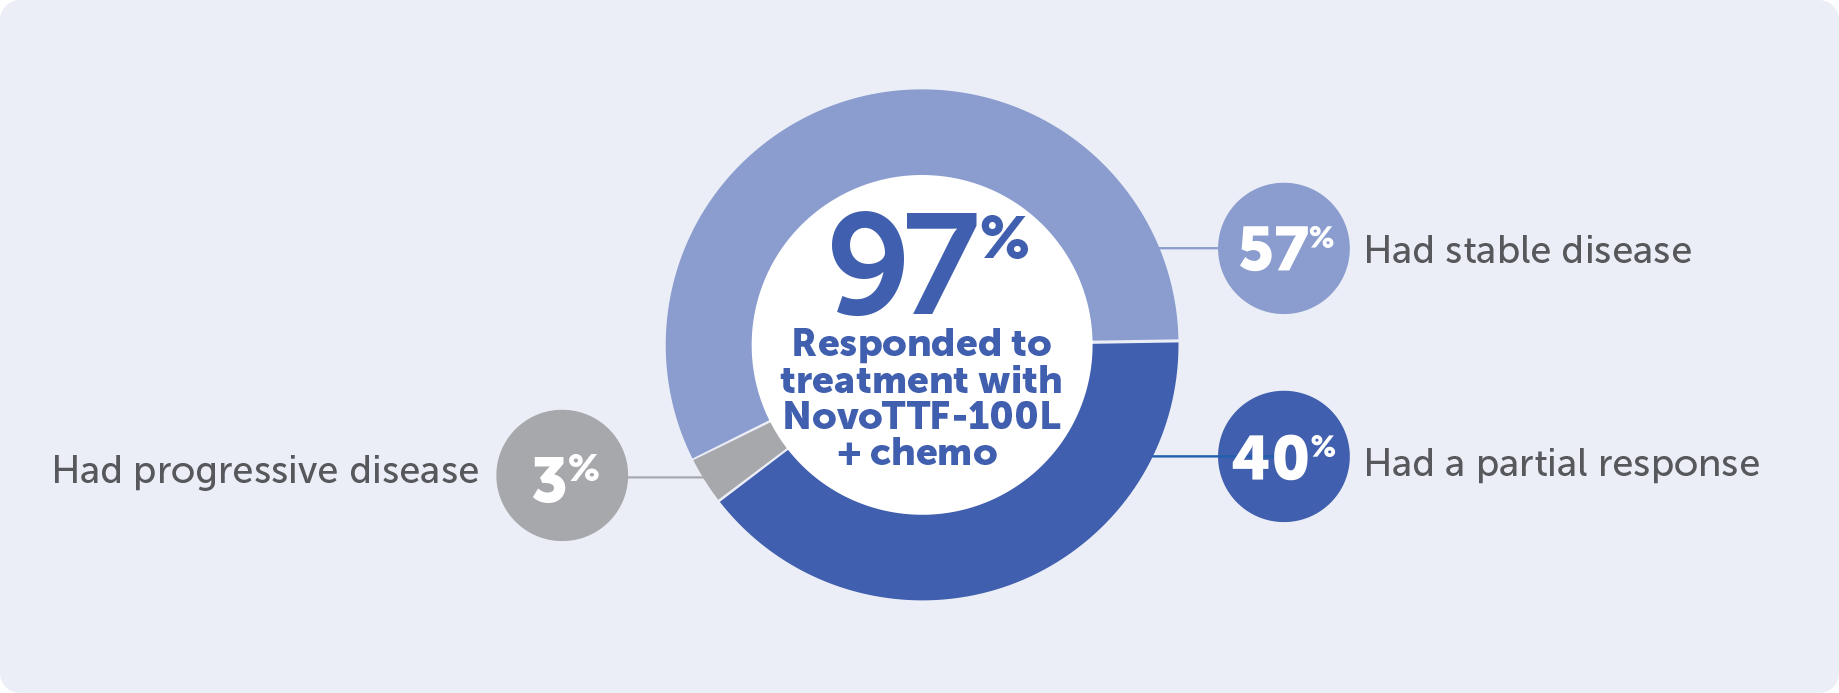 Learn more about study results for NovoTTF-100L™ + chemo